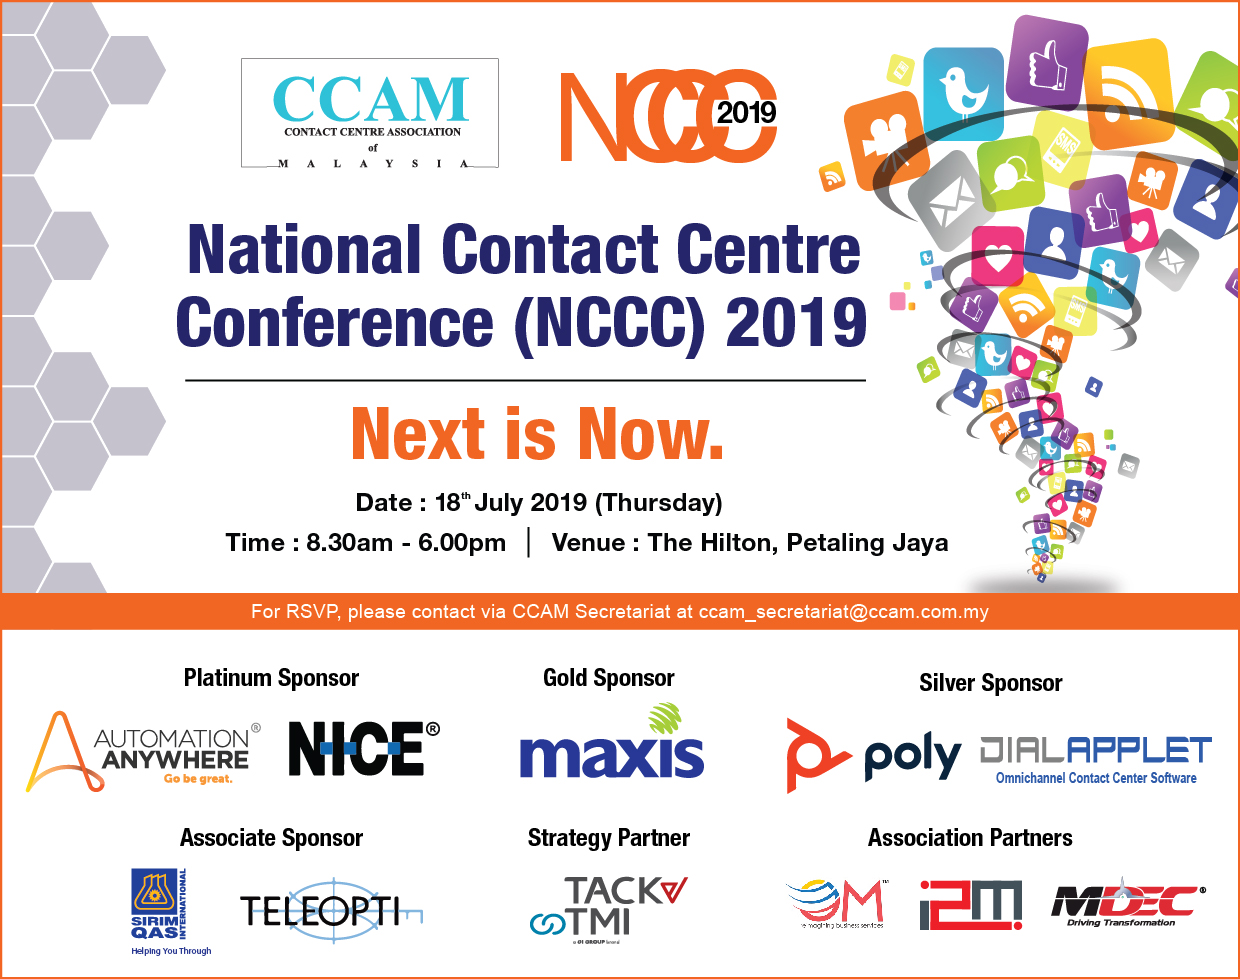 National Contact Centre Conference (NCCC) 2019